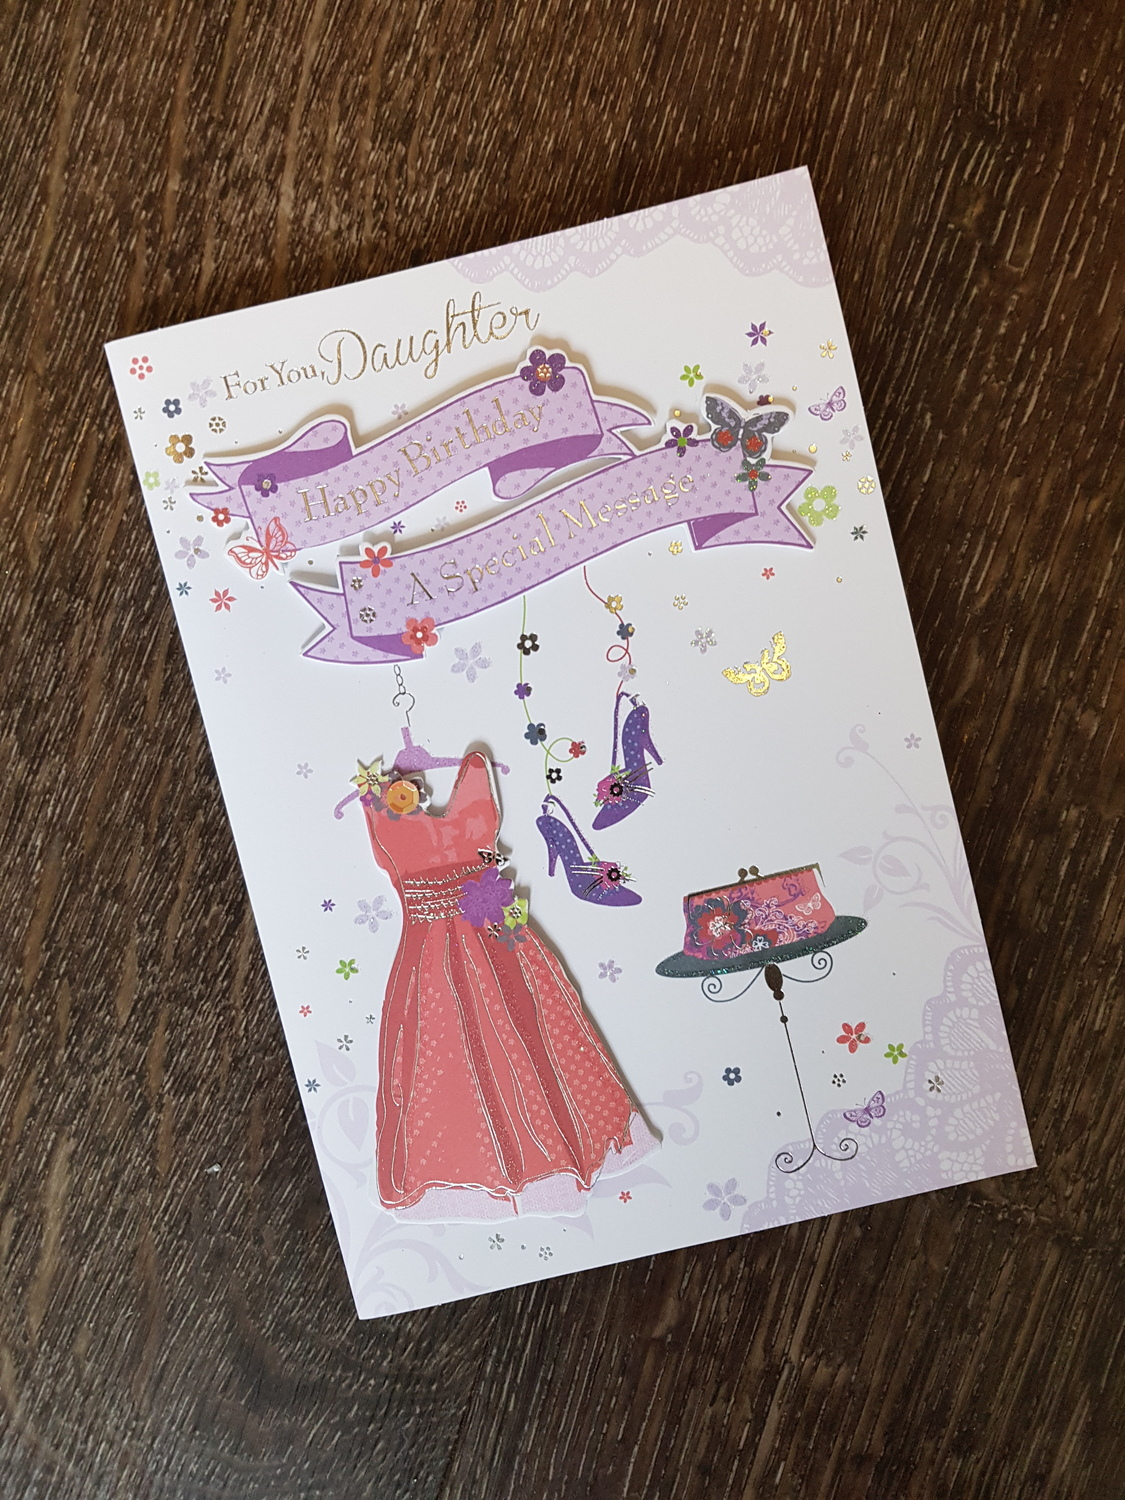 Daughter Dress Shoes Birthday Card